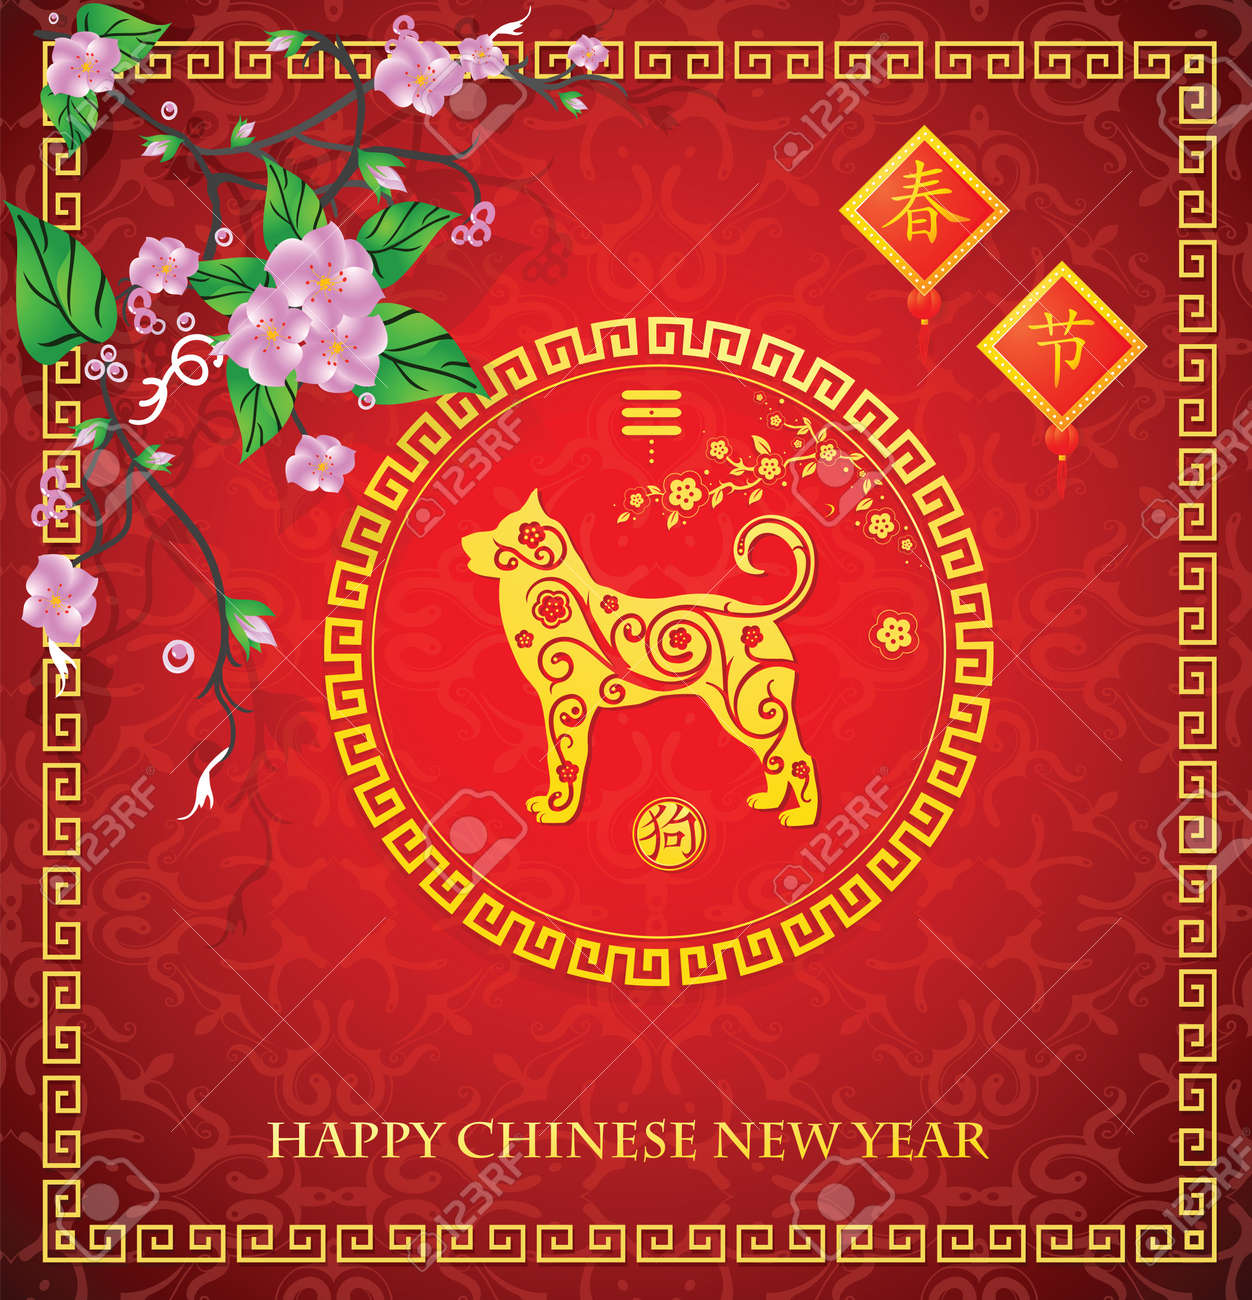 Chinese new year of the Yellow Dog 2018 greeting card (hieroglyphs translation: Dog, and New Year) - 82688694